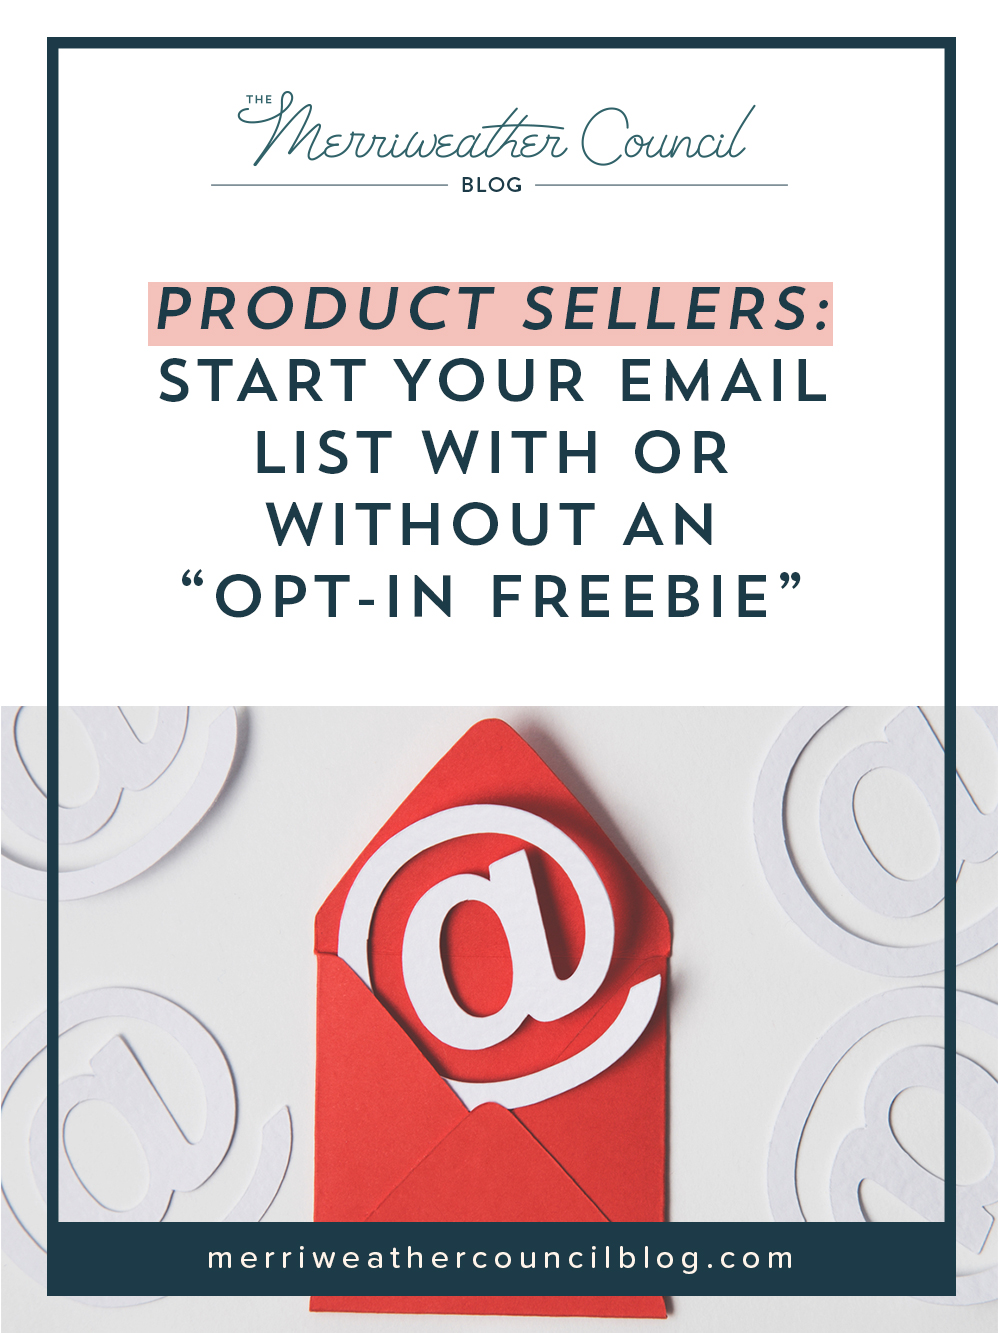 "Product Sellers: Start Your Email List with or WITHOUT an ""opt-in freebie"" 